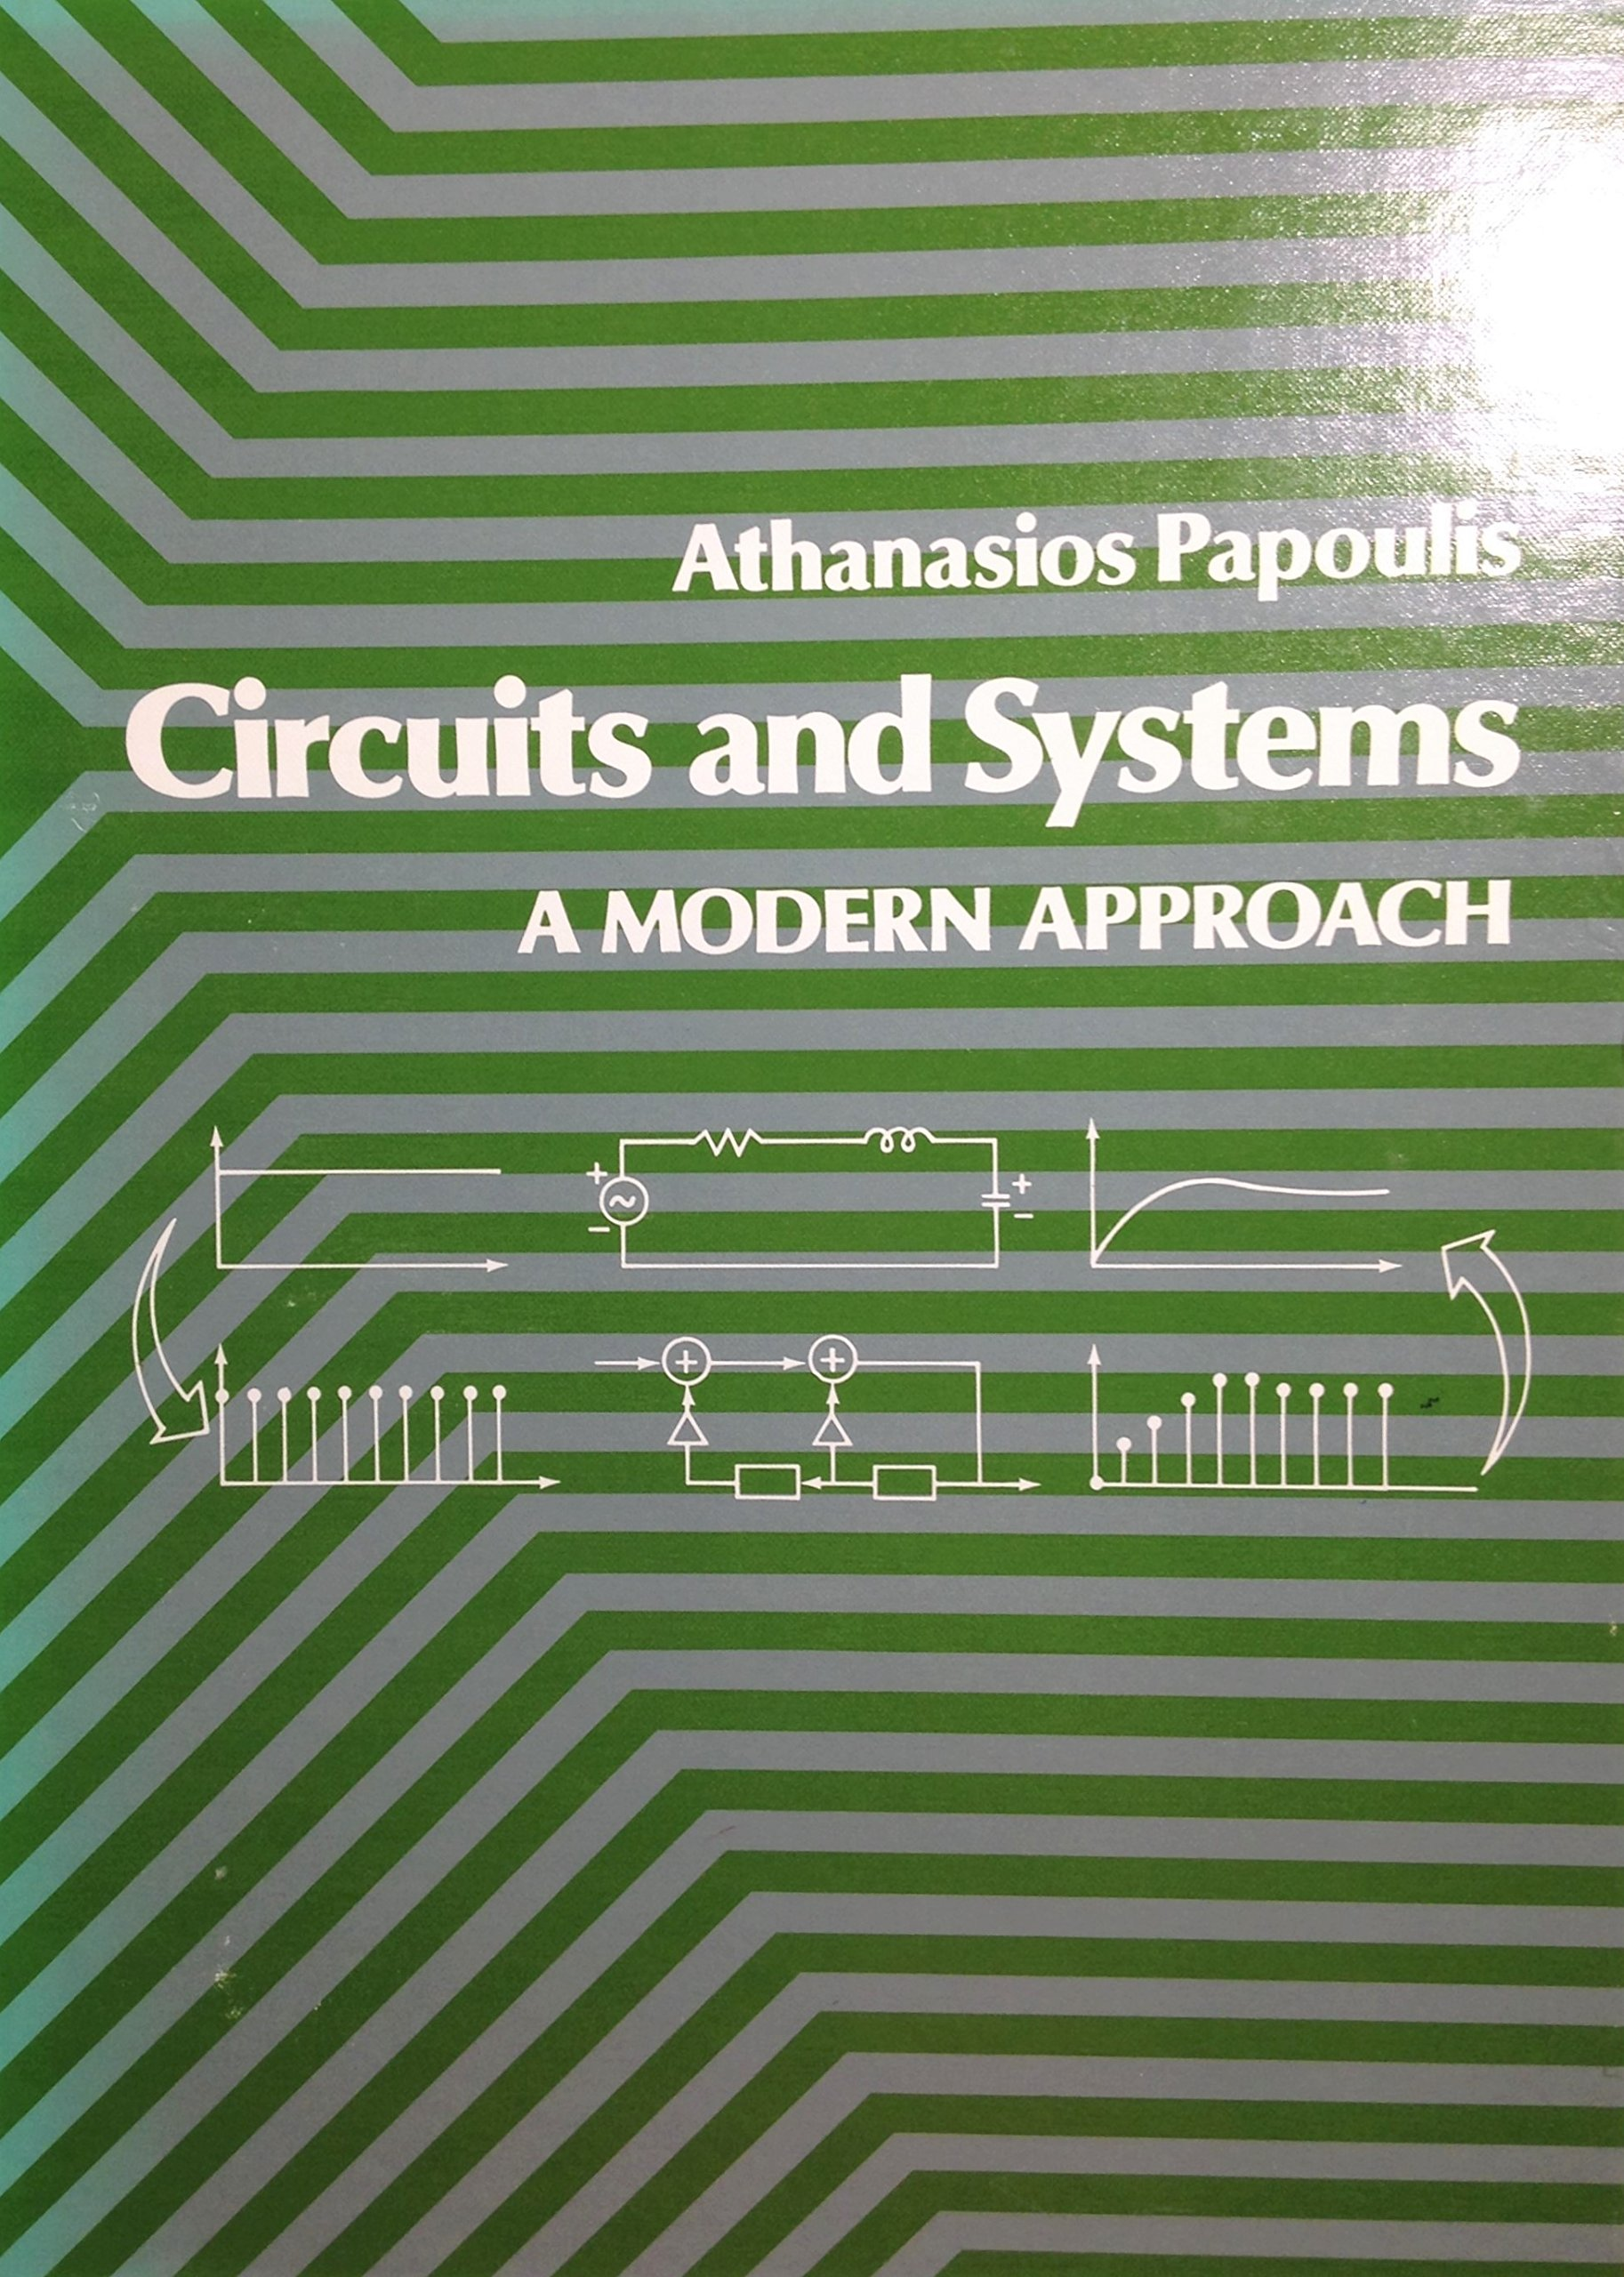 Circuits And Systems A Modern Approach The Oxford Series In Fundamentals Of Linear Electronics Integrated Discrete Circuitry Electrical Computer Engineering Athanasios Papoulis 9780030560972 Books